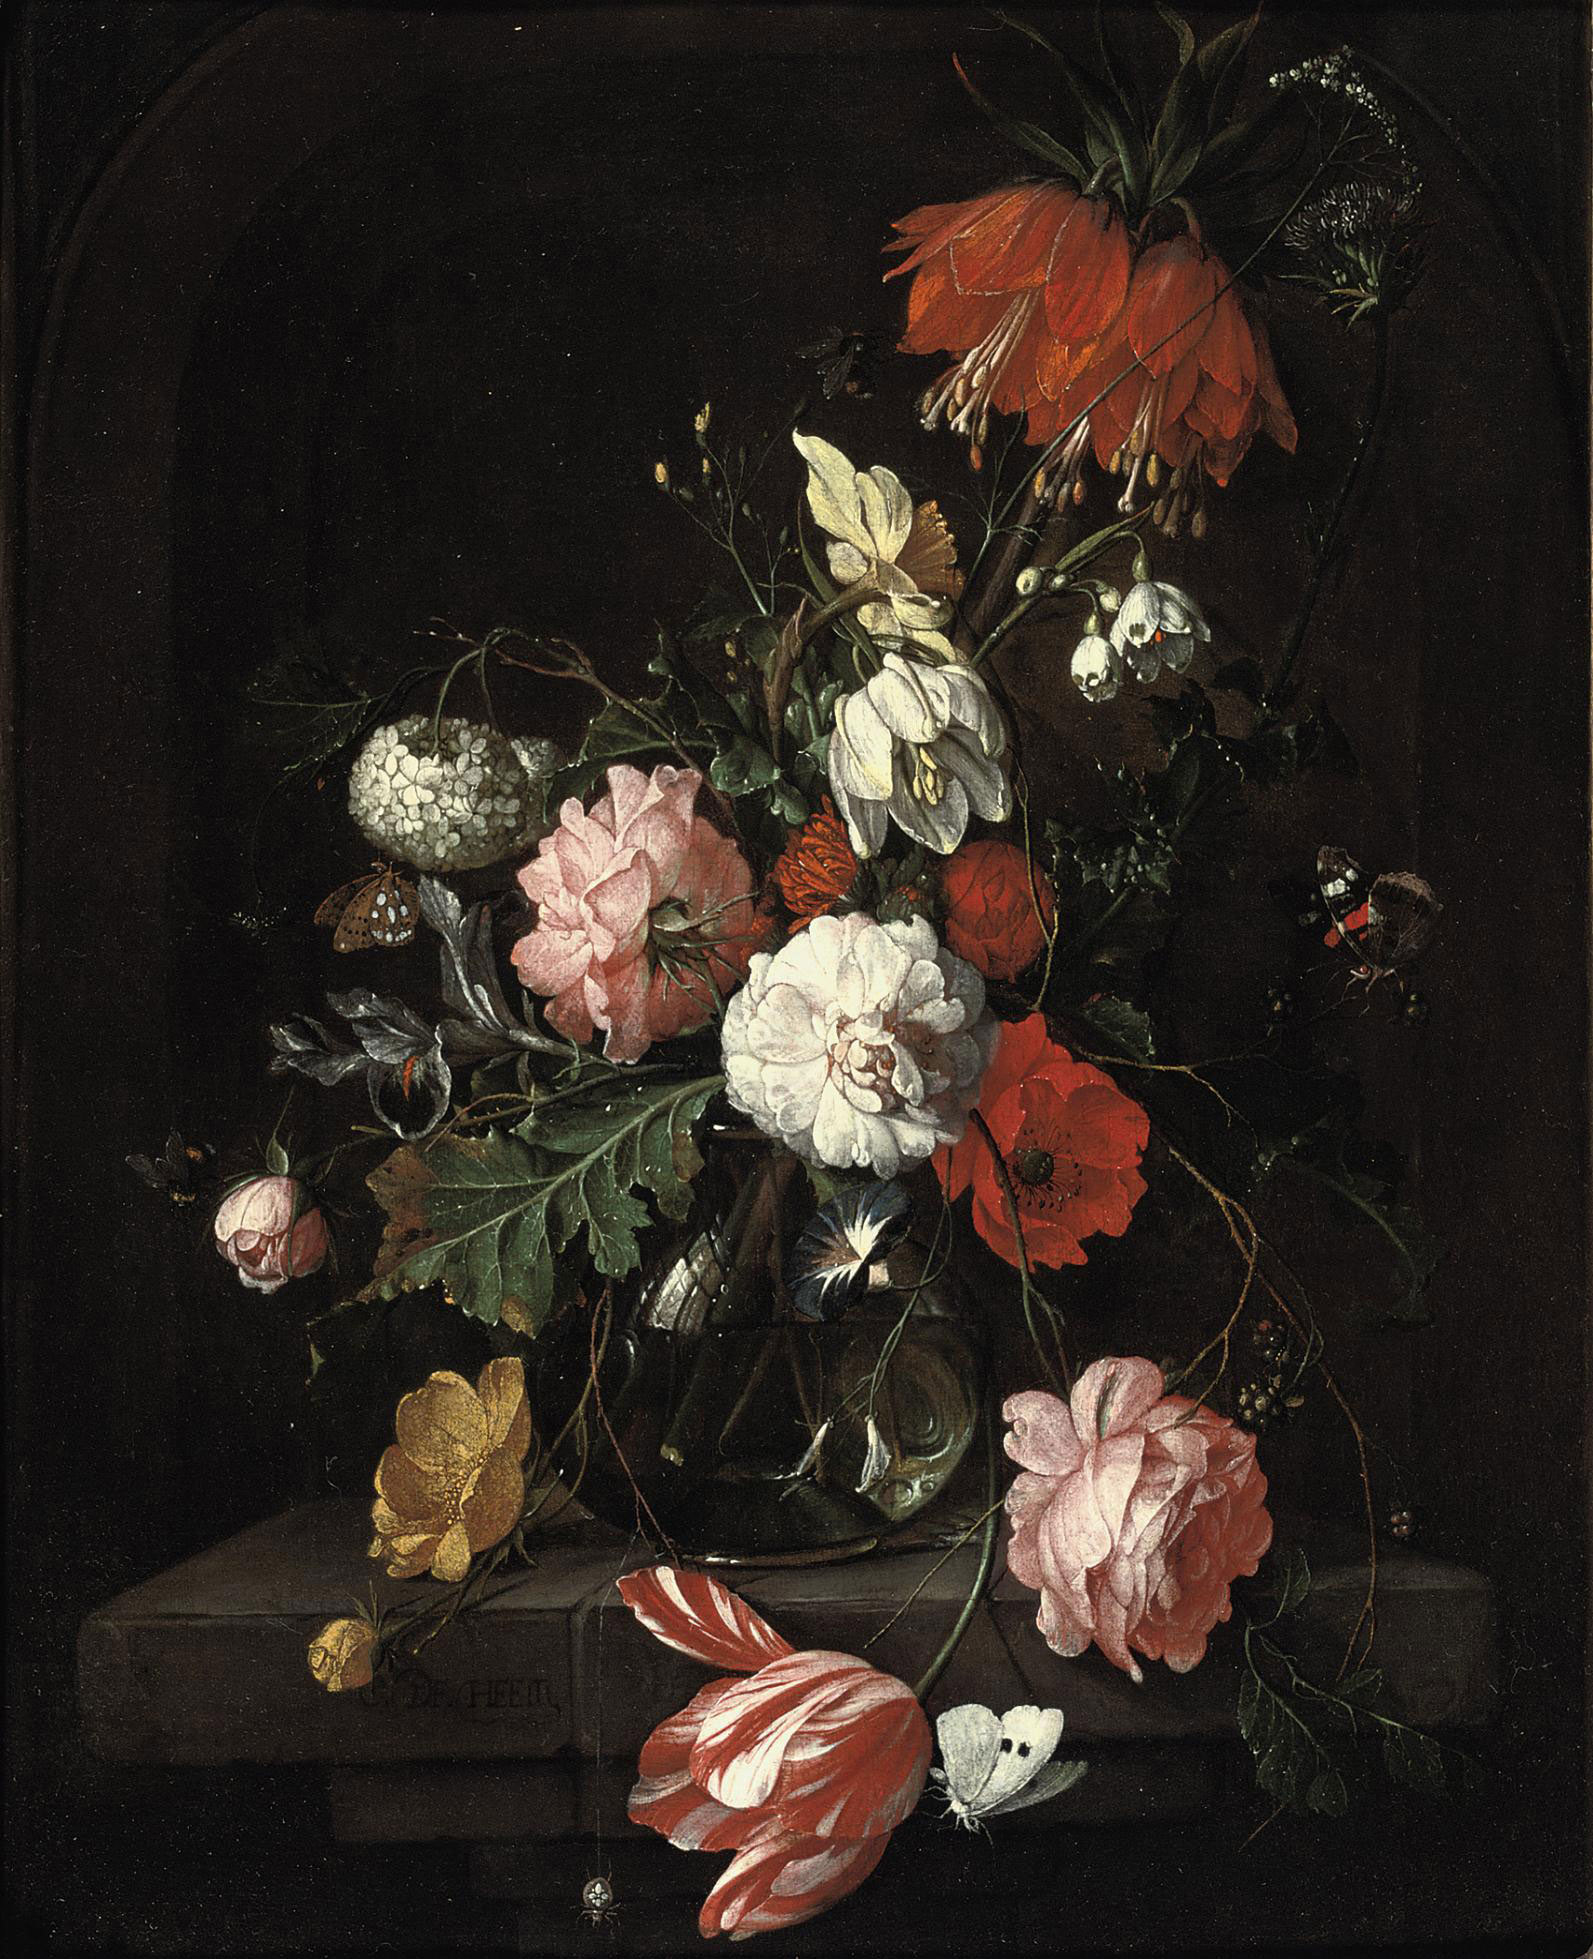 A tulip, pink roses, a crown imperial lily and other flowers in a glass vase, all on a stone ledge, surrounded by butterflies